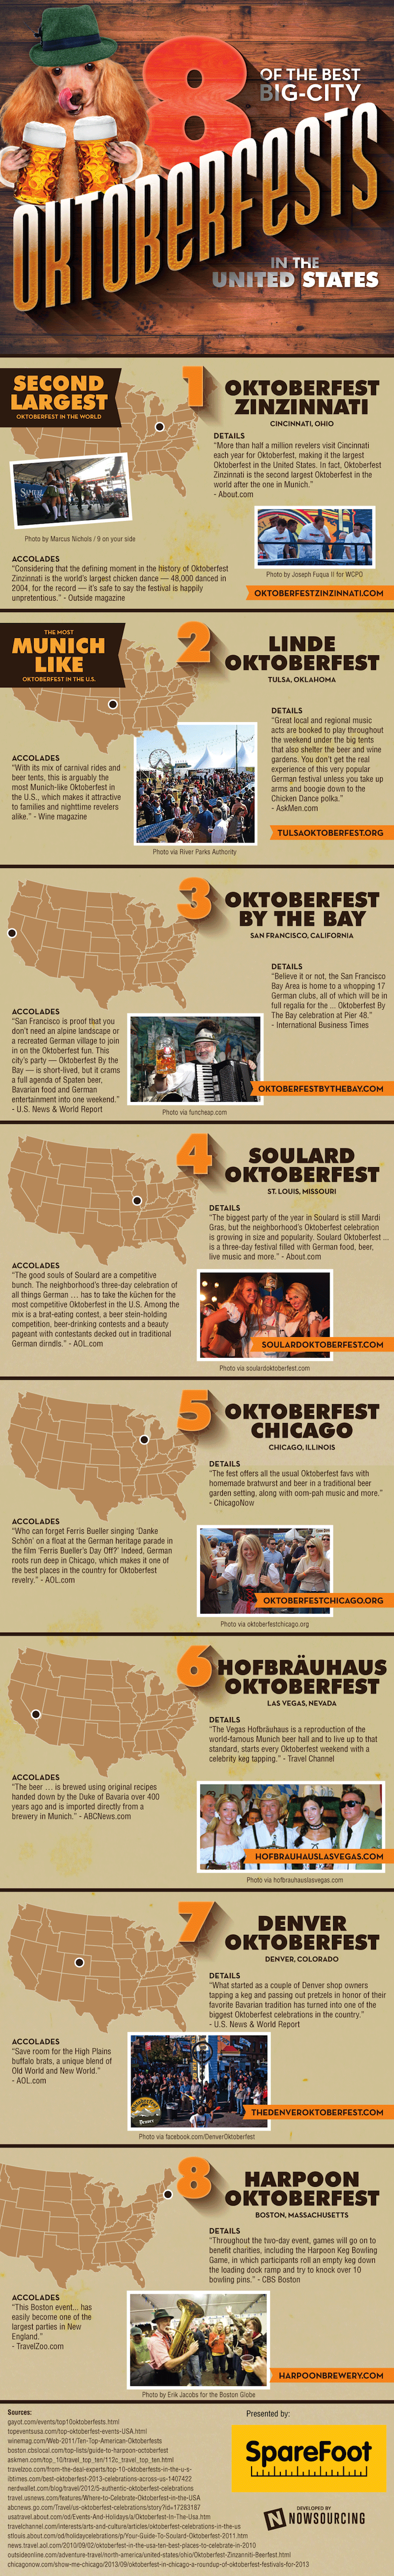 8 of the Best Big-City Oktoberfests In The U.S.